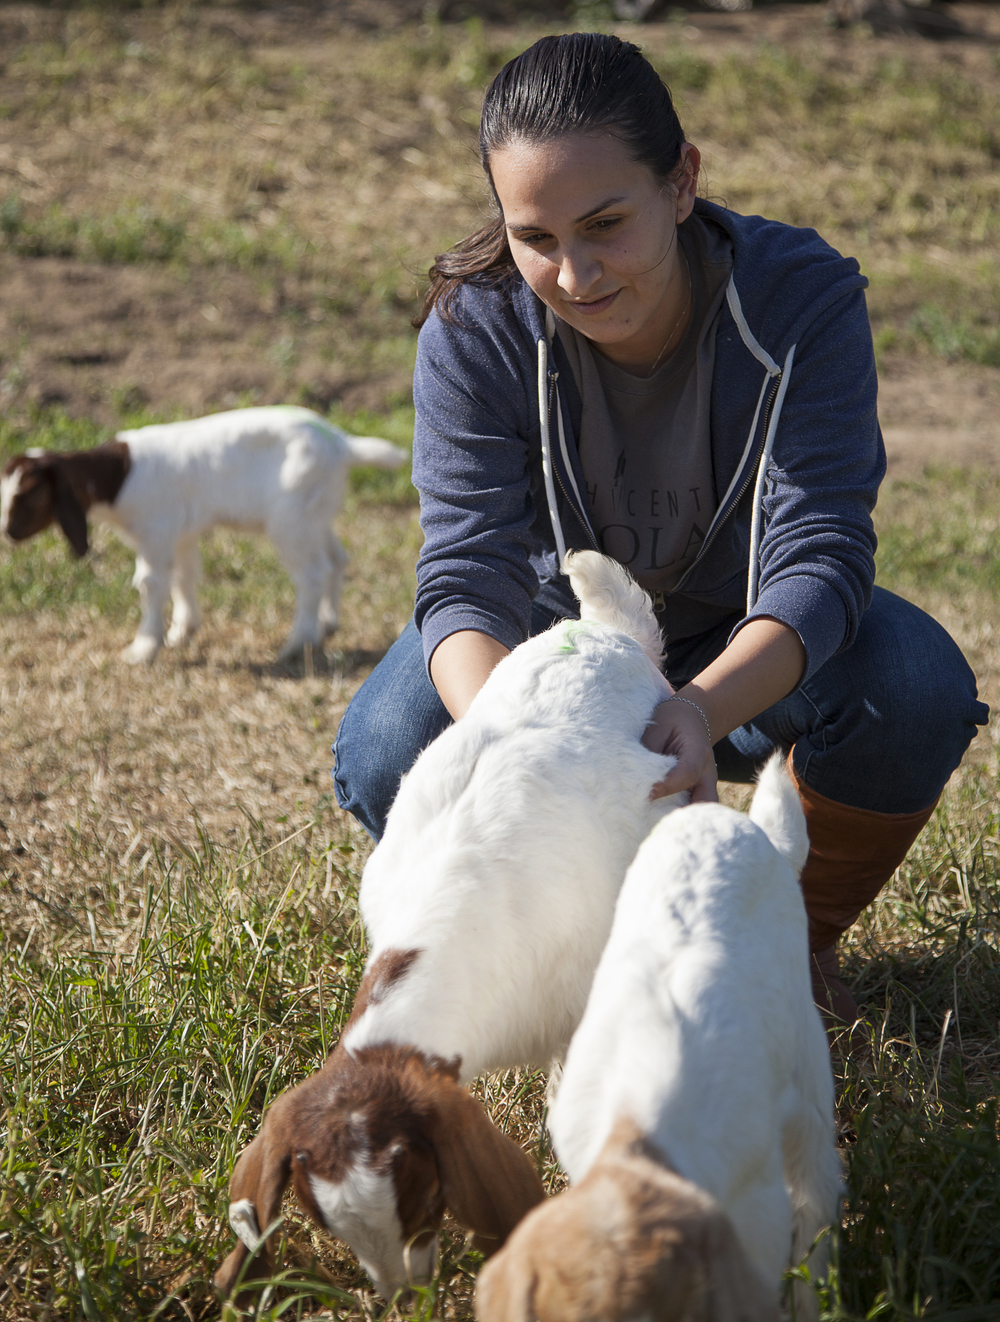 Georgina Martinez looks after two baby goats at the Pierce farm on Friday, March 20, 2015. Woodland Hills, Calif.  Read the full story  here